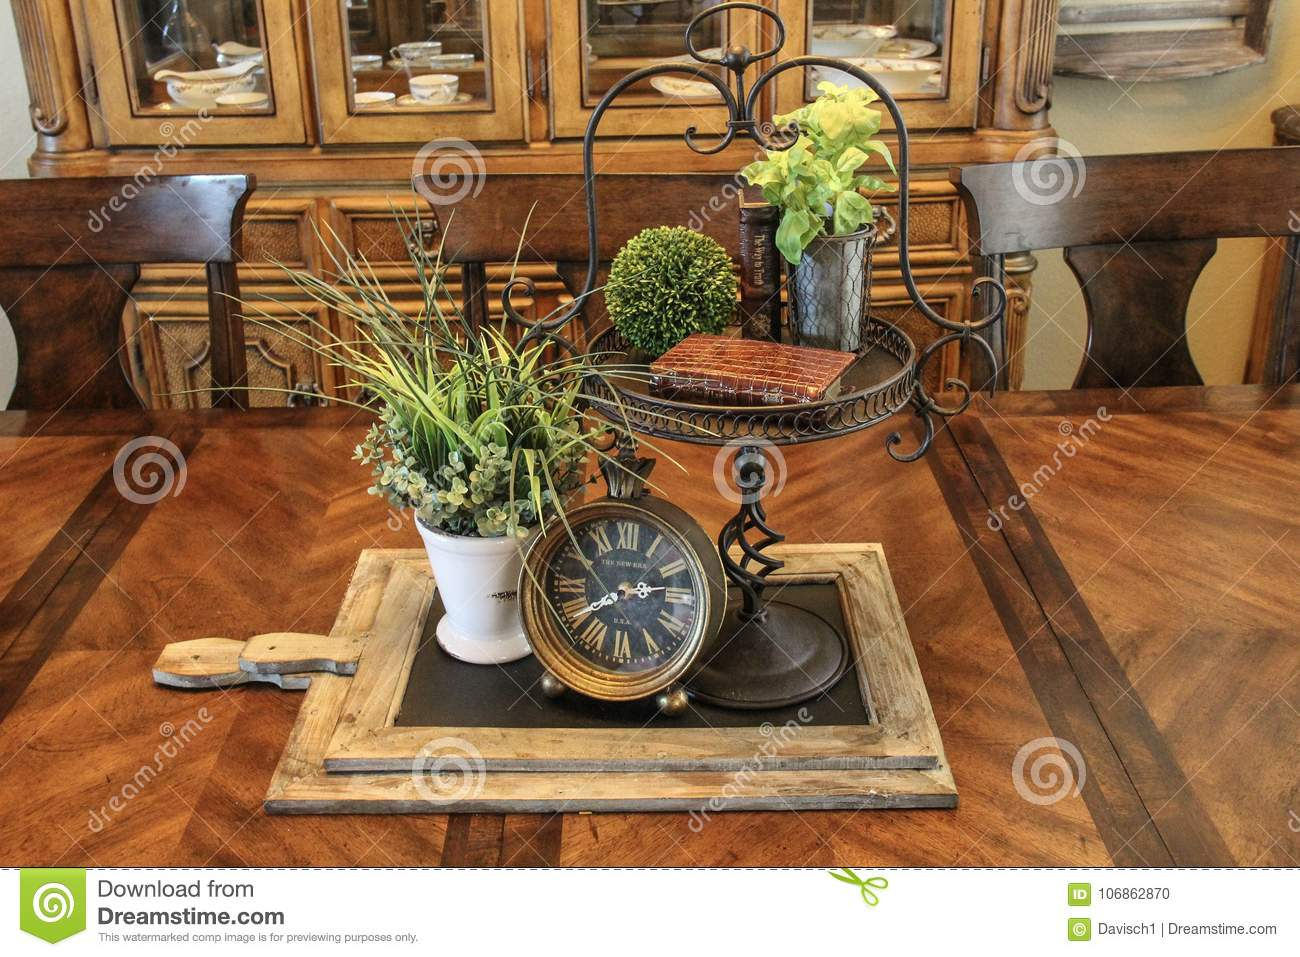 Super Unique Table Centerpiece With Clock Editorial Image Image Home Interior And Landscaping Ologienasavecom